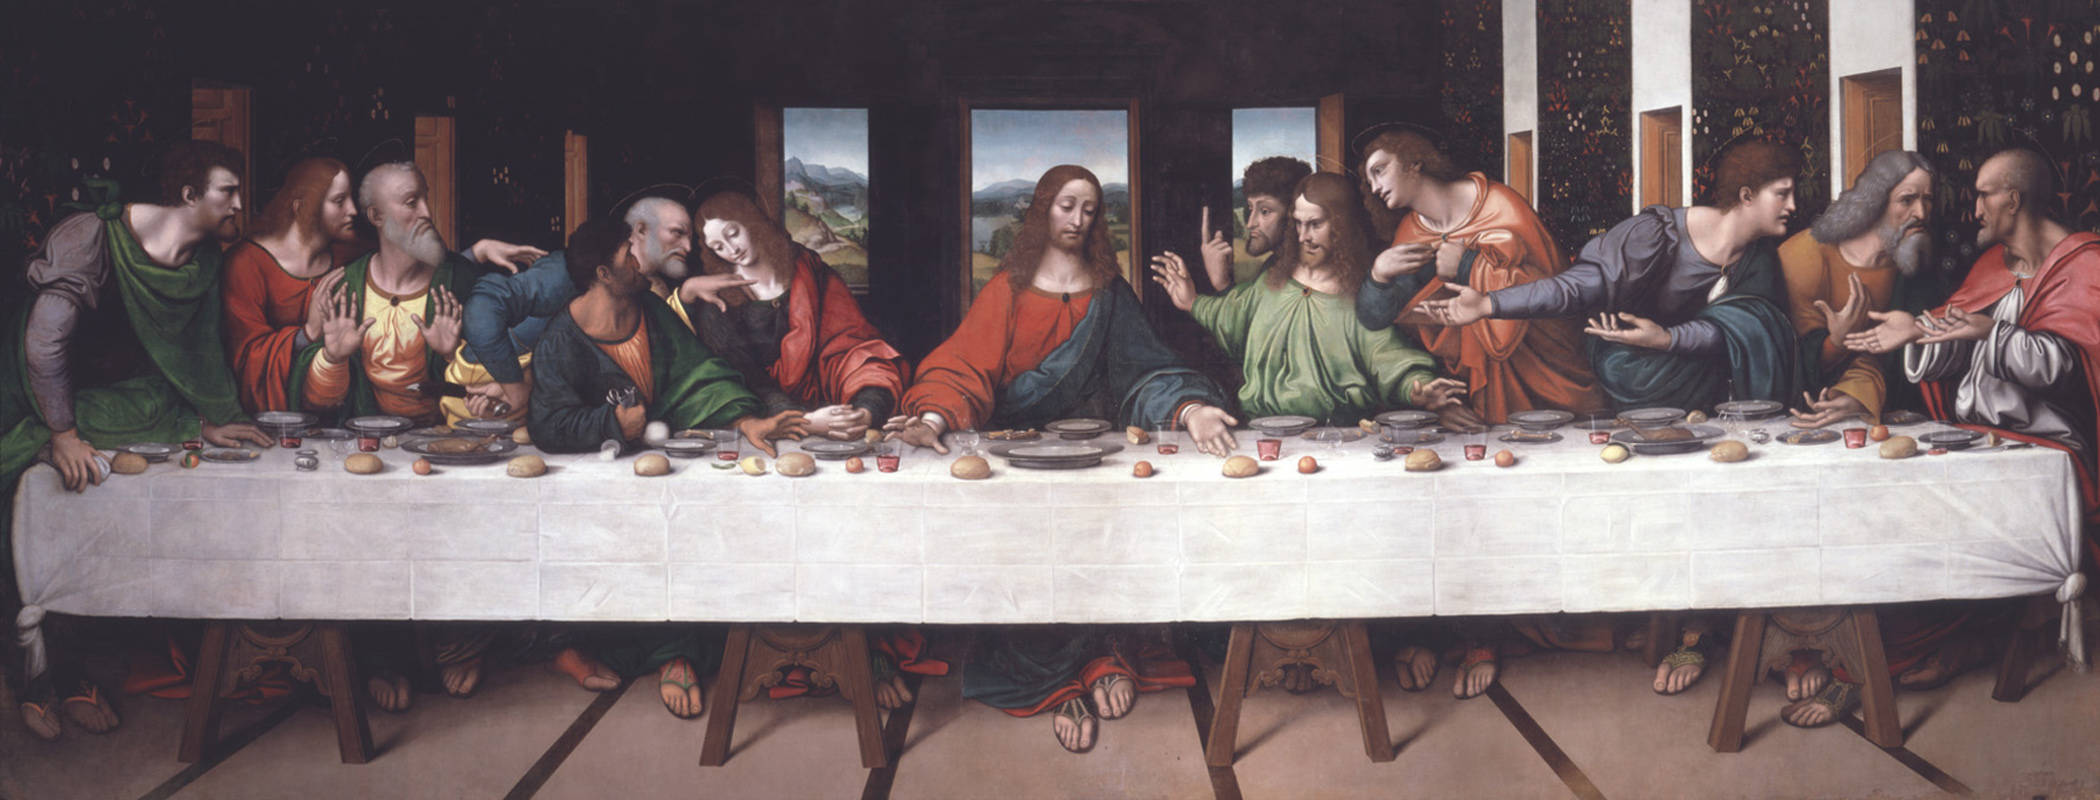 https://upload.wikimedia.org/wikipedia/commons/1/11/Giampietrino-Last-Supper-ca-1520.jpg